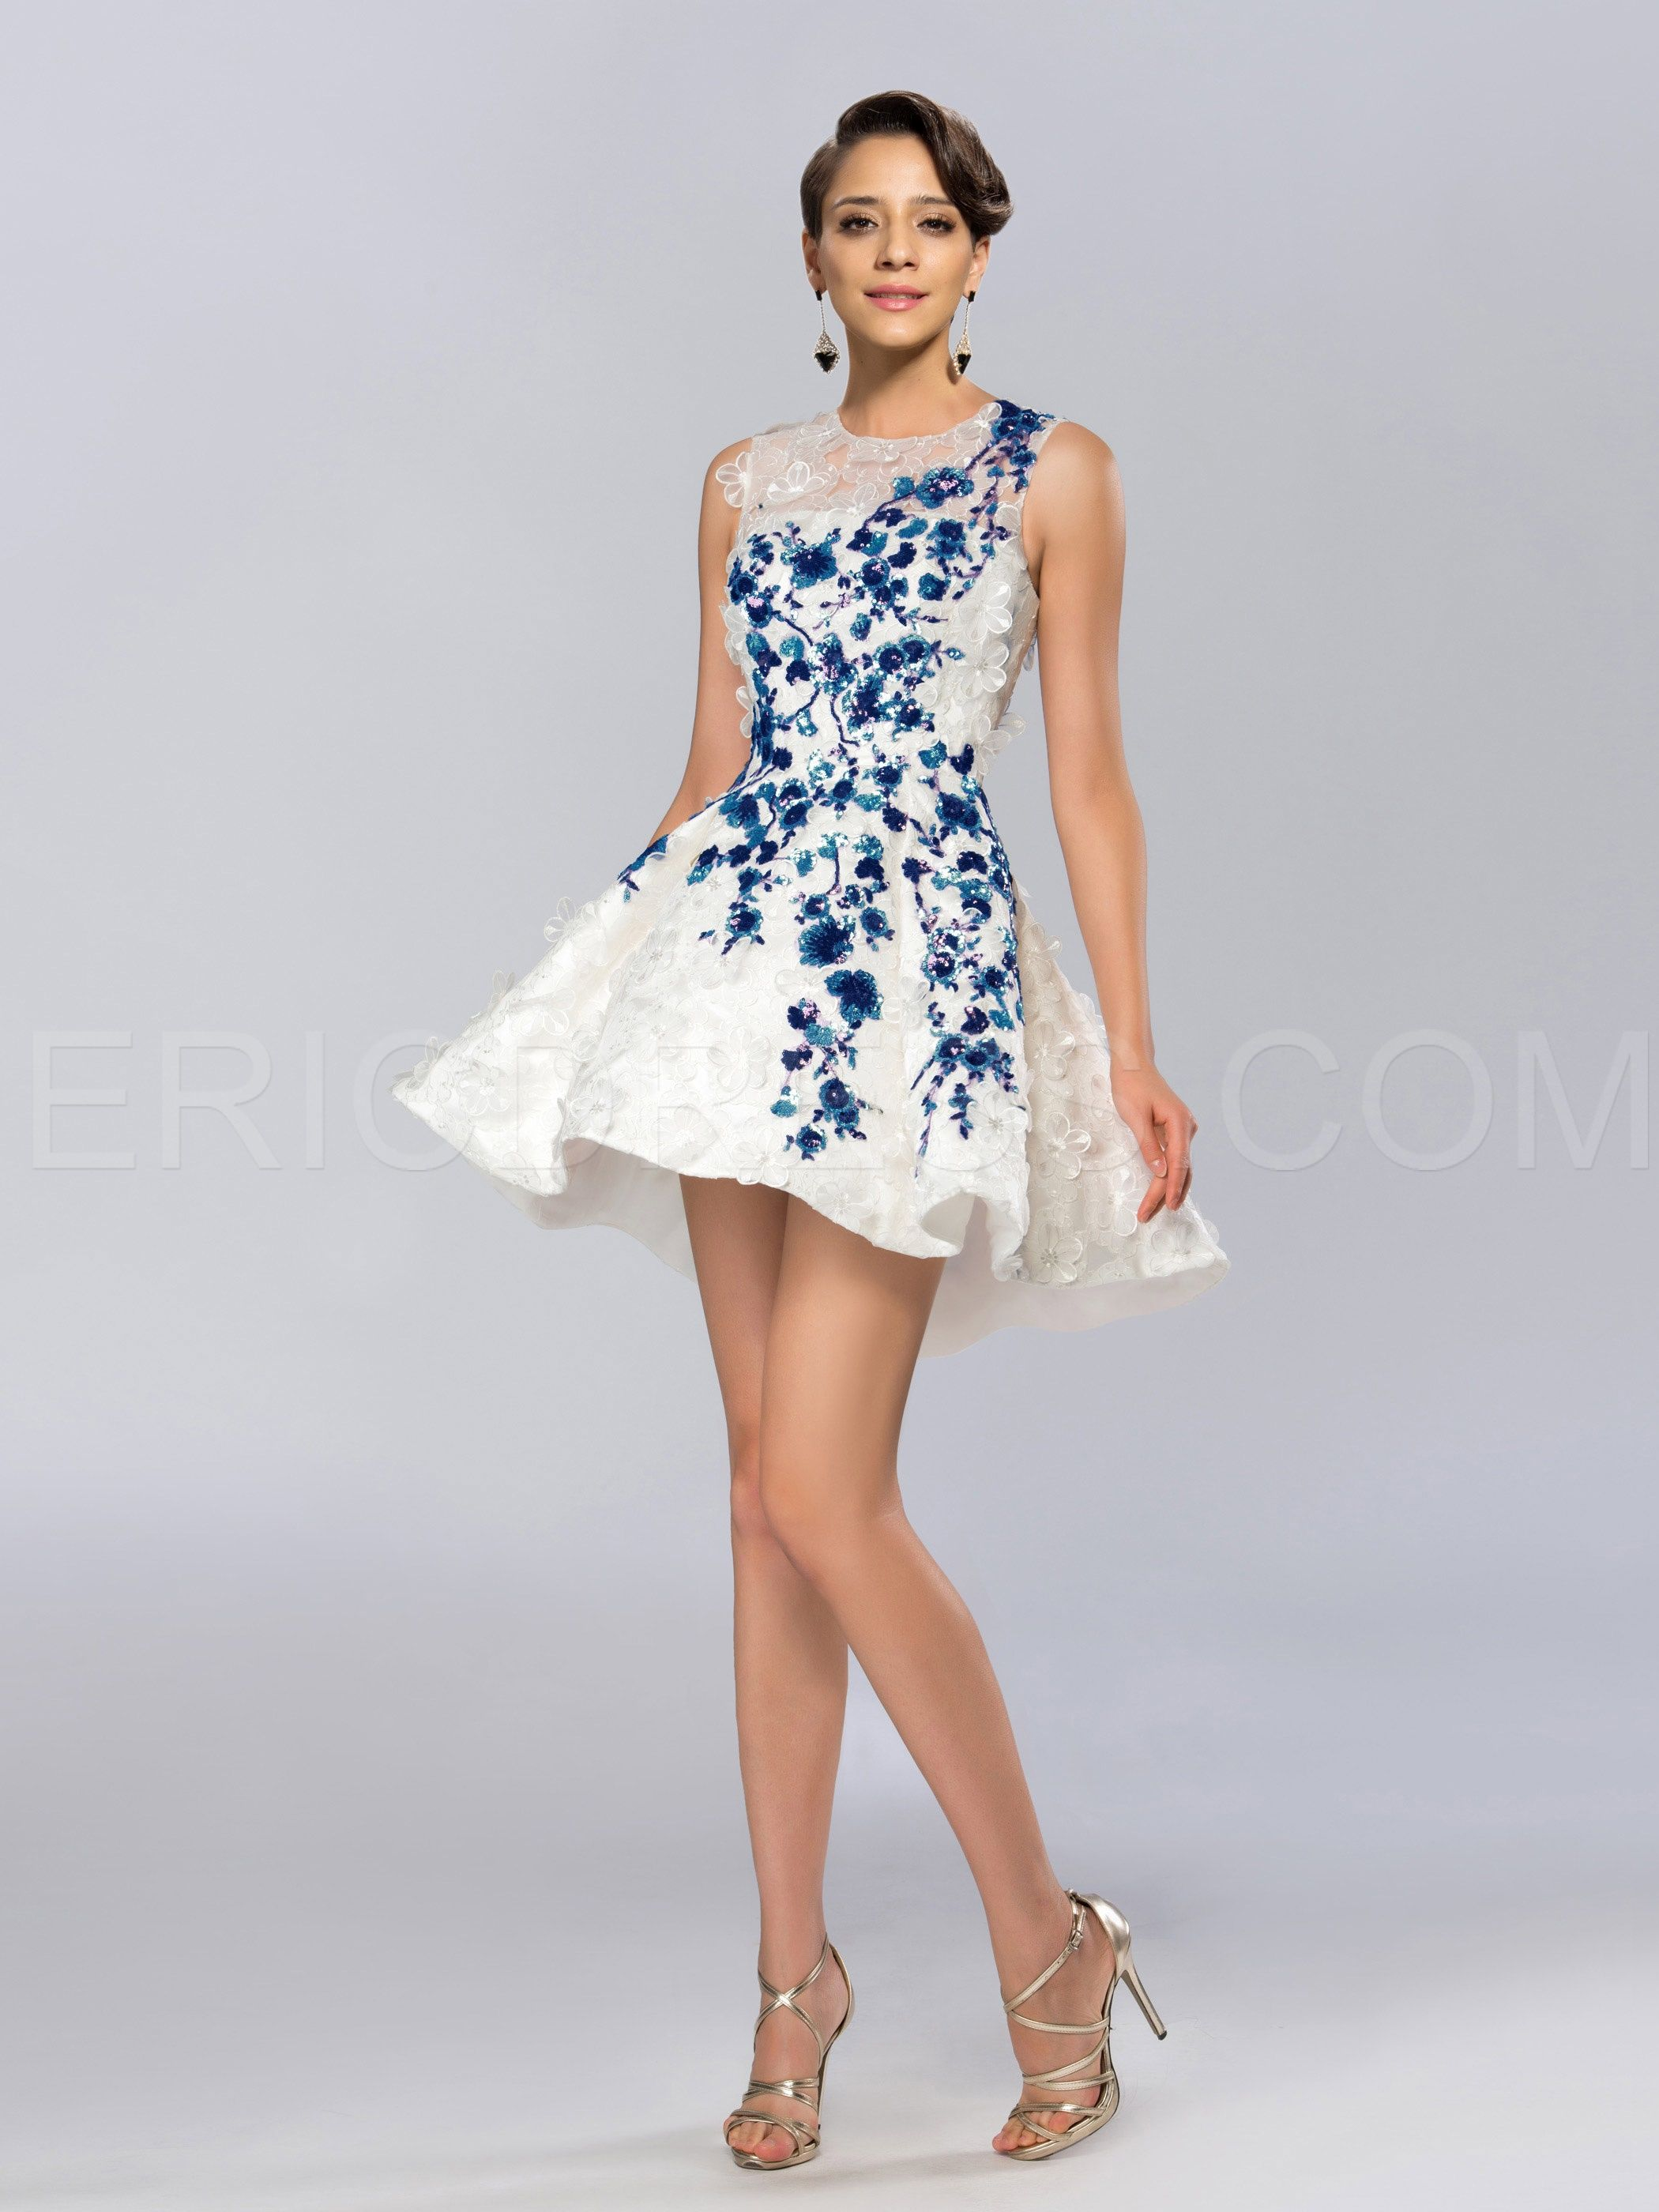 1d328a9a2d6c08 ericdress.com offers high quality Amazing Floral Sequin Appliques Jewel  Neck Short Cocktail Dress Sexy Cocktail Dresses unit price of $ 107.63.